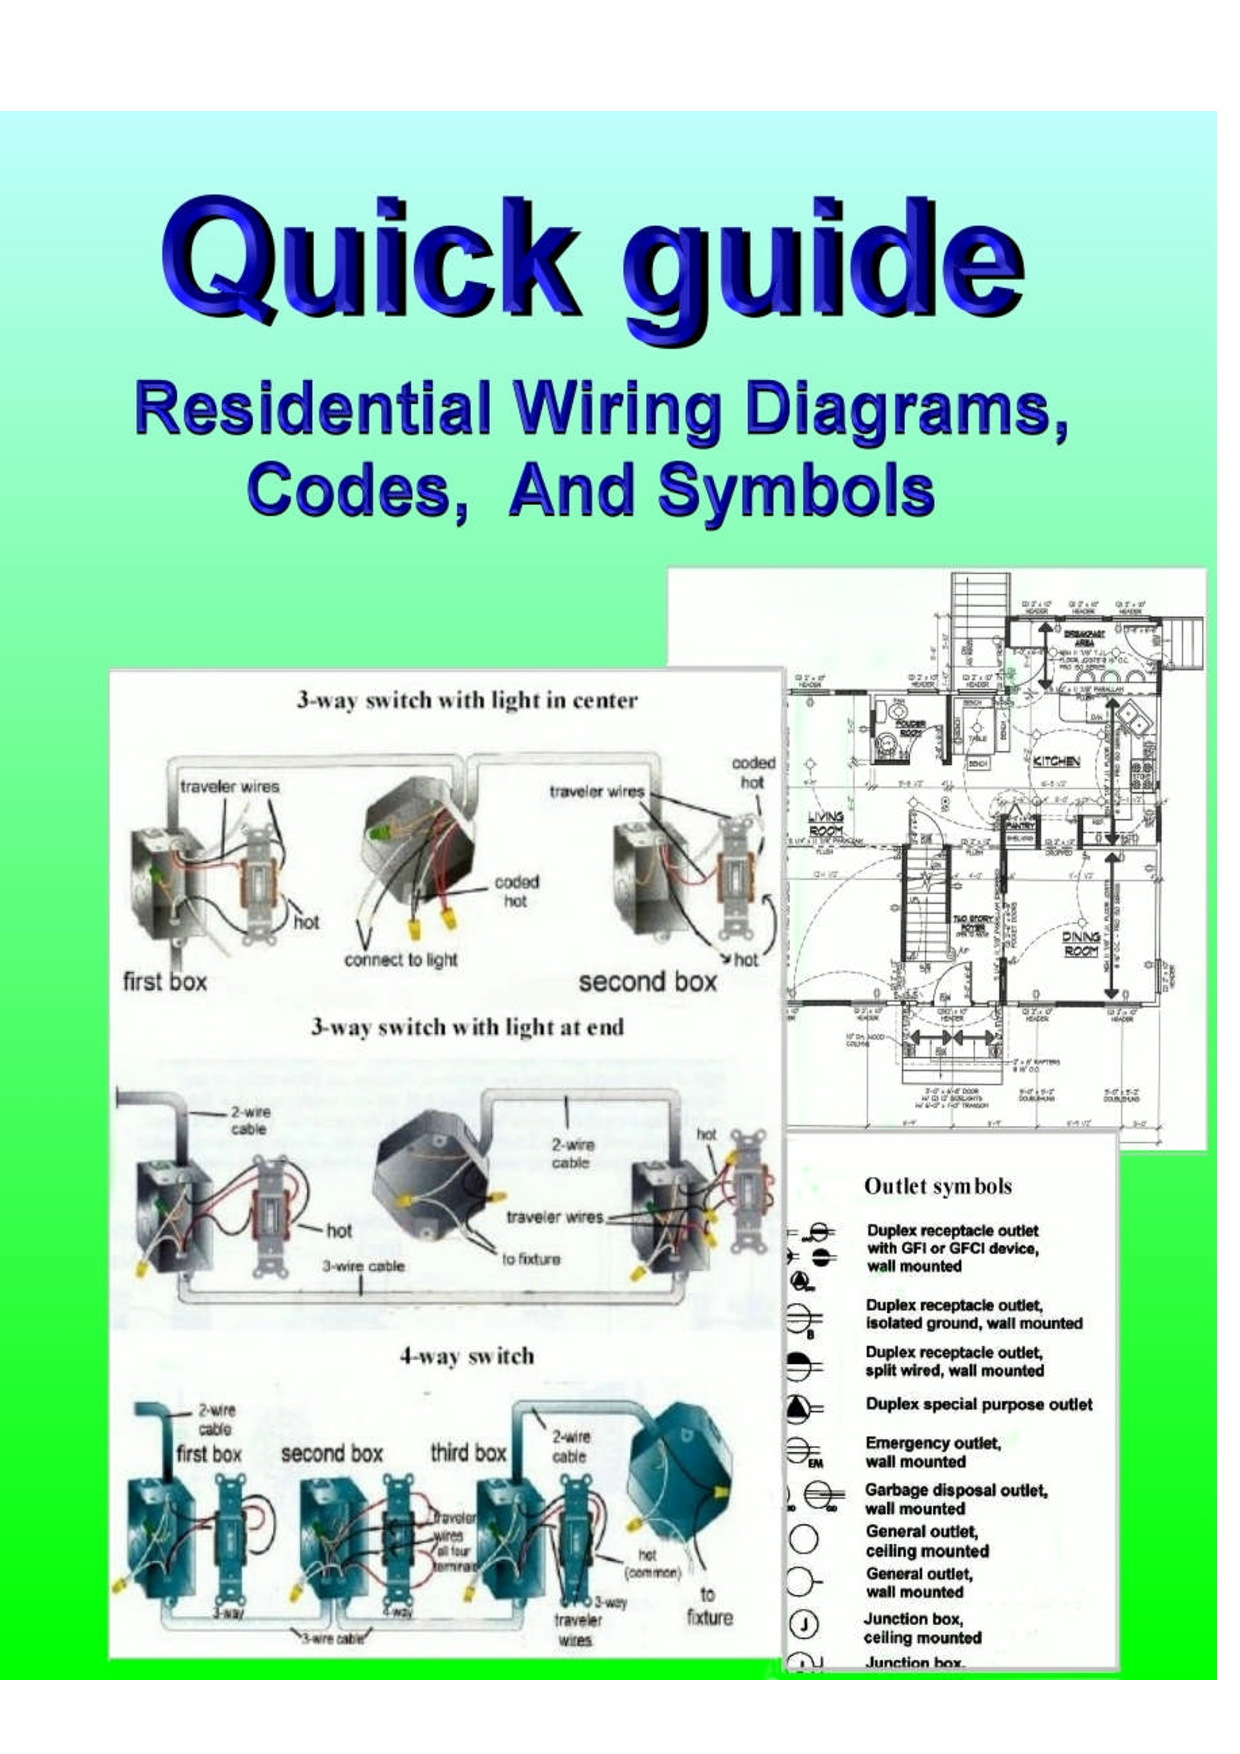 c3f403d8f667f3f3dbd14336f6c29d3e home electrical wiring diagrams visit the following link for Meter Socket Wiring at webbmarketing.co